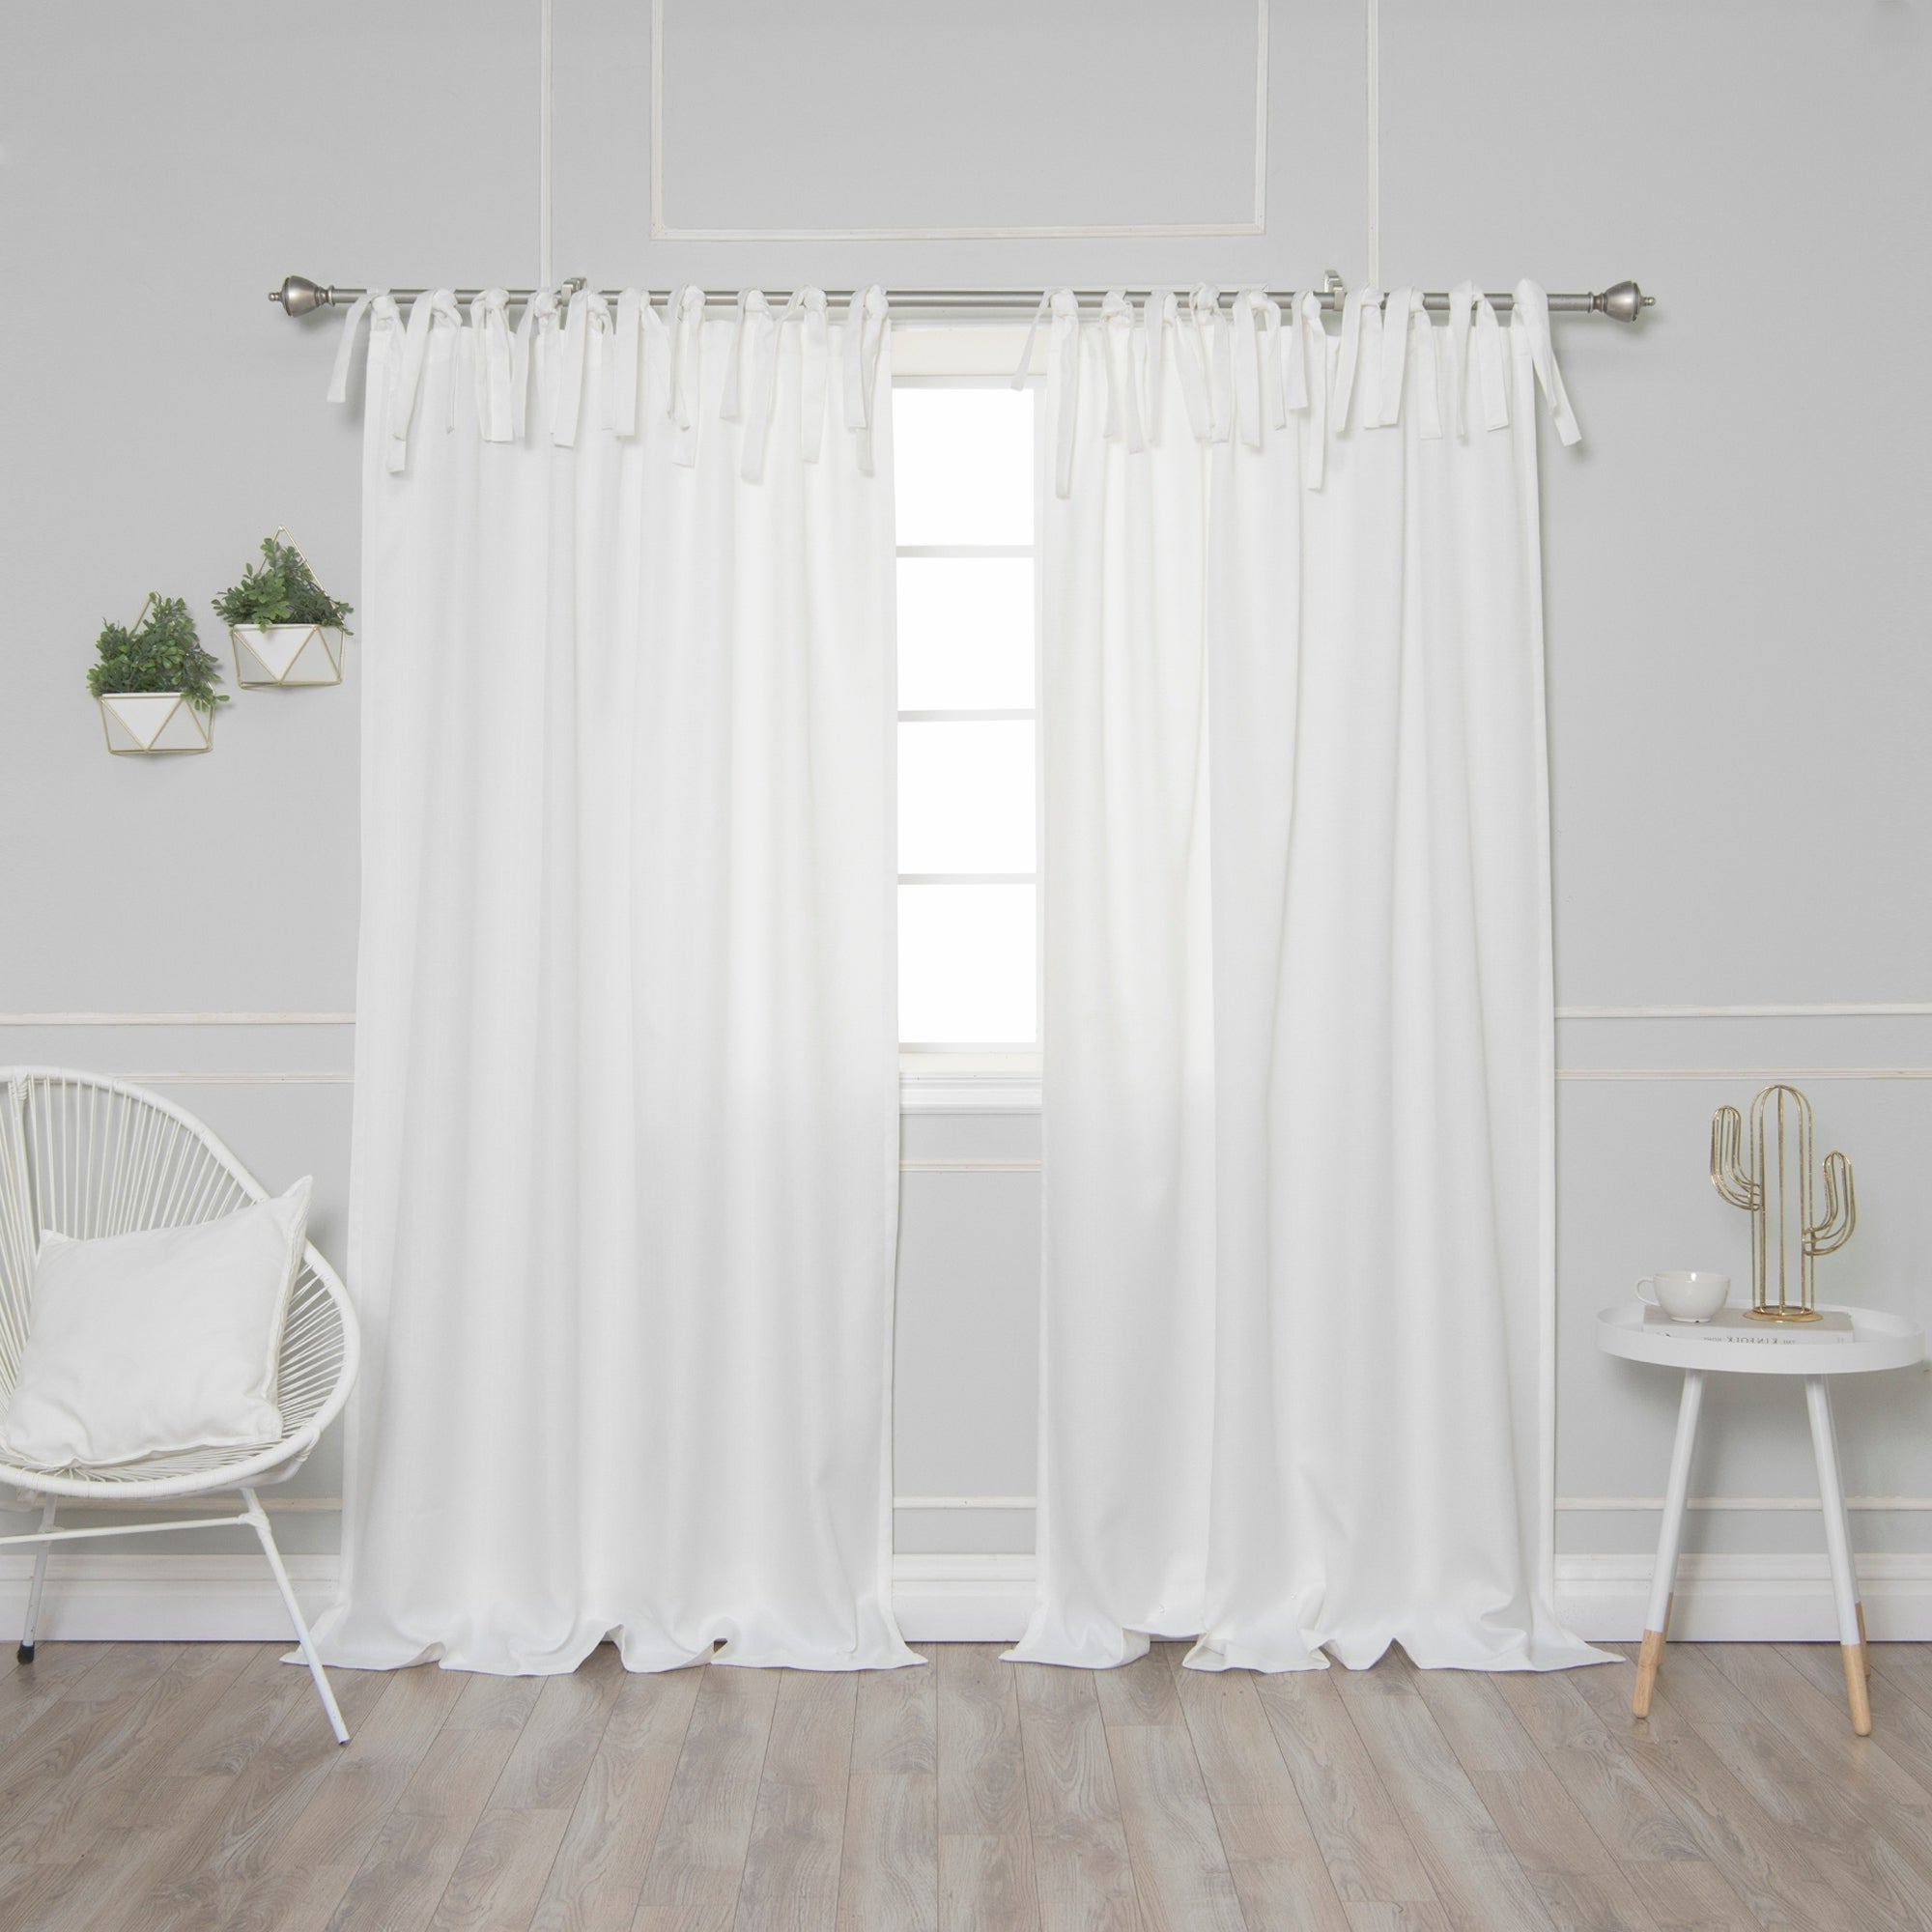 Newest Aurora Home Tie Top Oxford Curtain Panel Pair With Elrene Jolie Tie Top Curtain Panels (View 14 of 20)